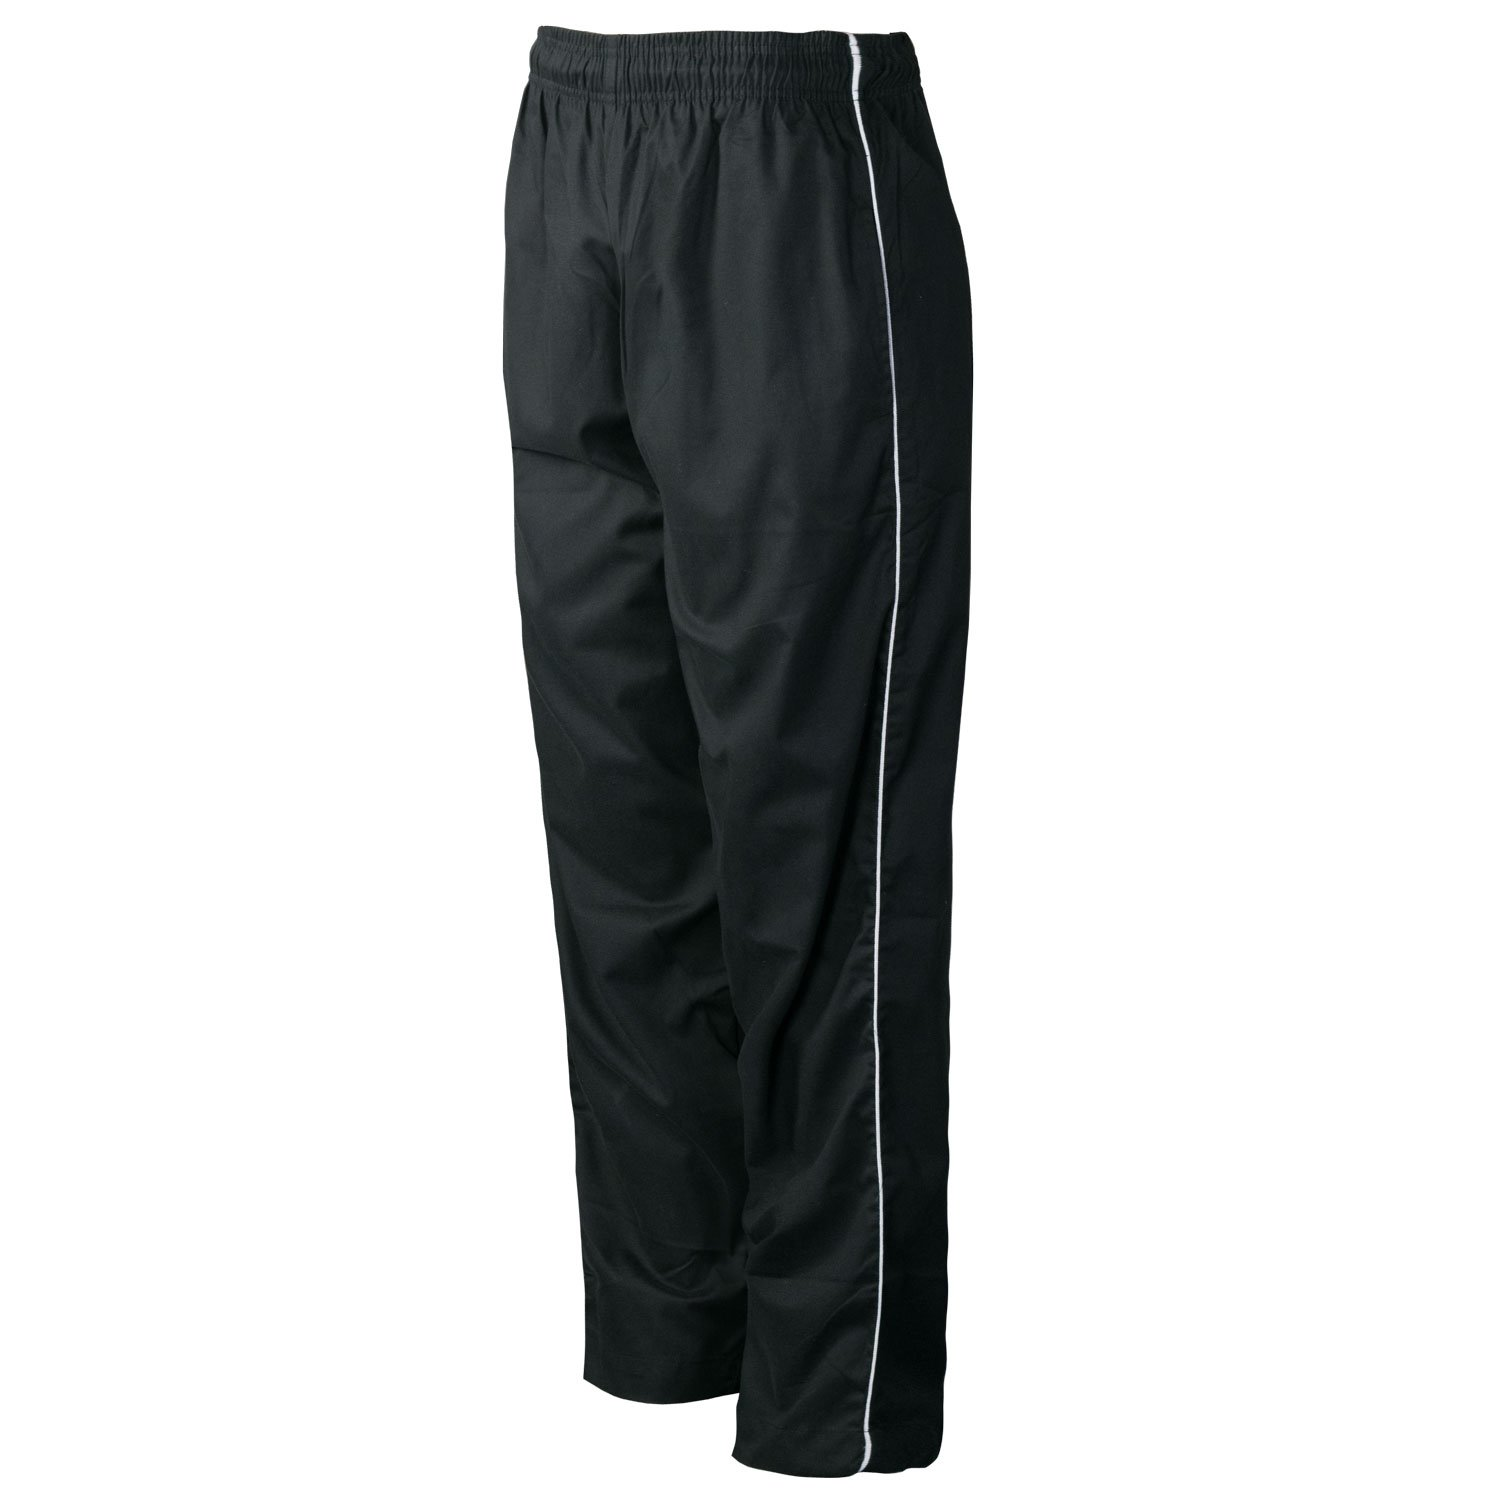 CHEF CODE Chef Pants, Classic Baggy with Elastic Waist and Drawstring CC253 (2XL, Black) by Chef Code